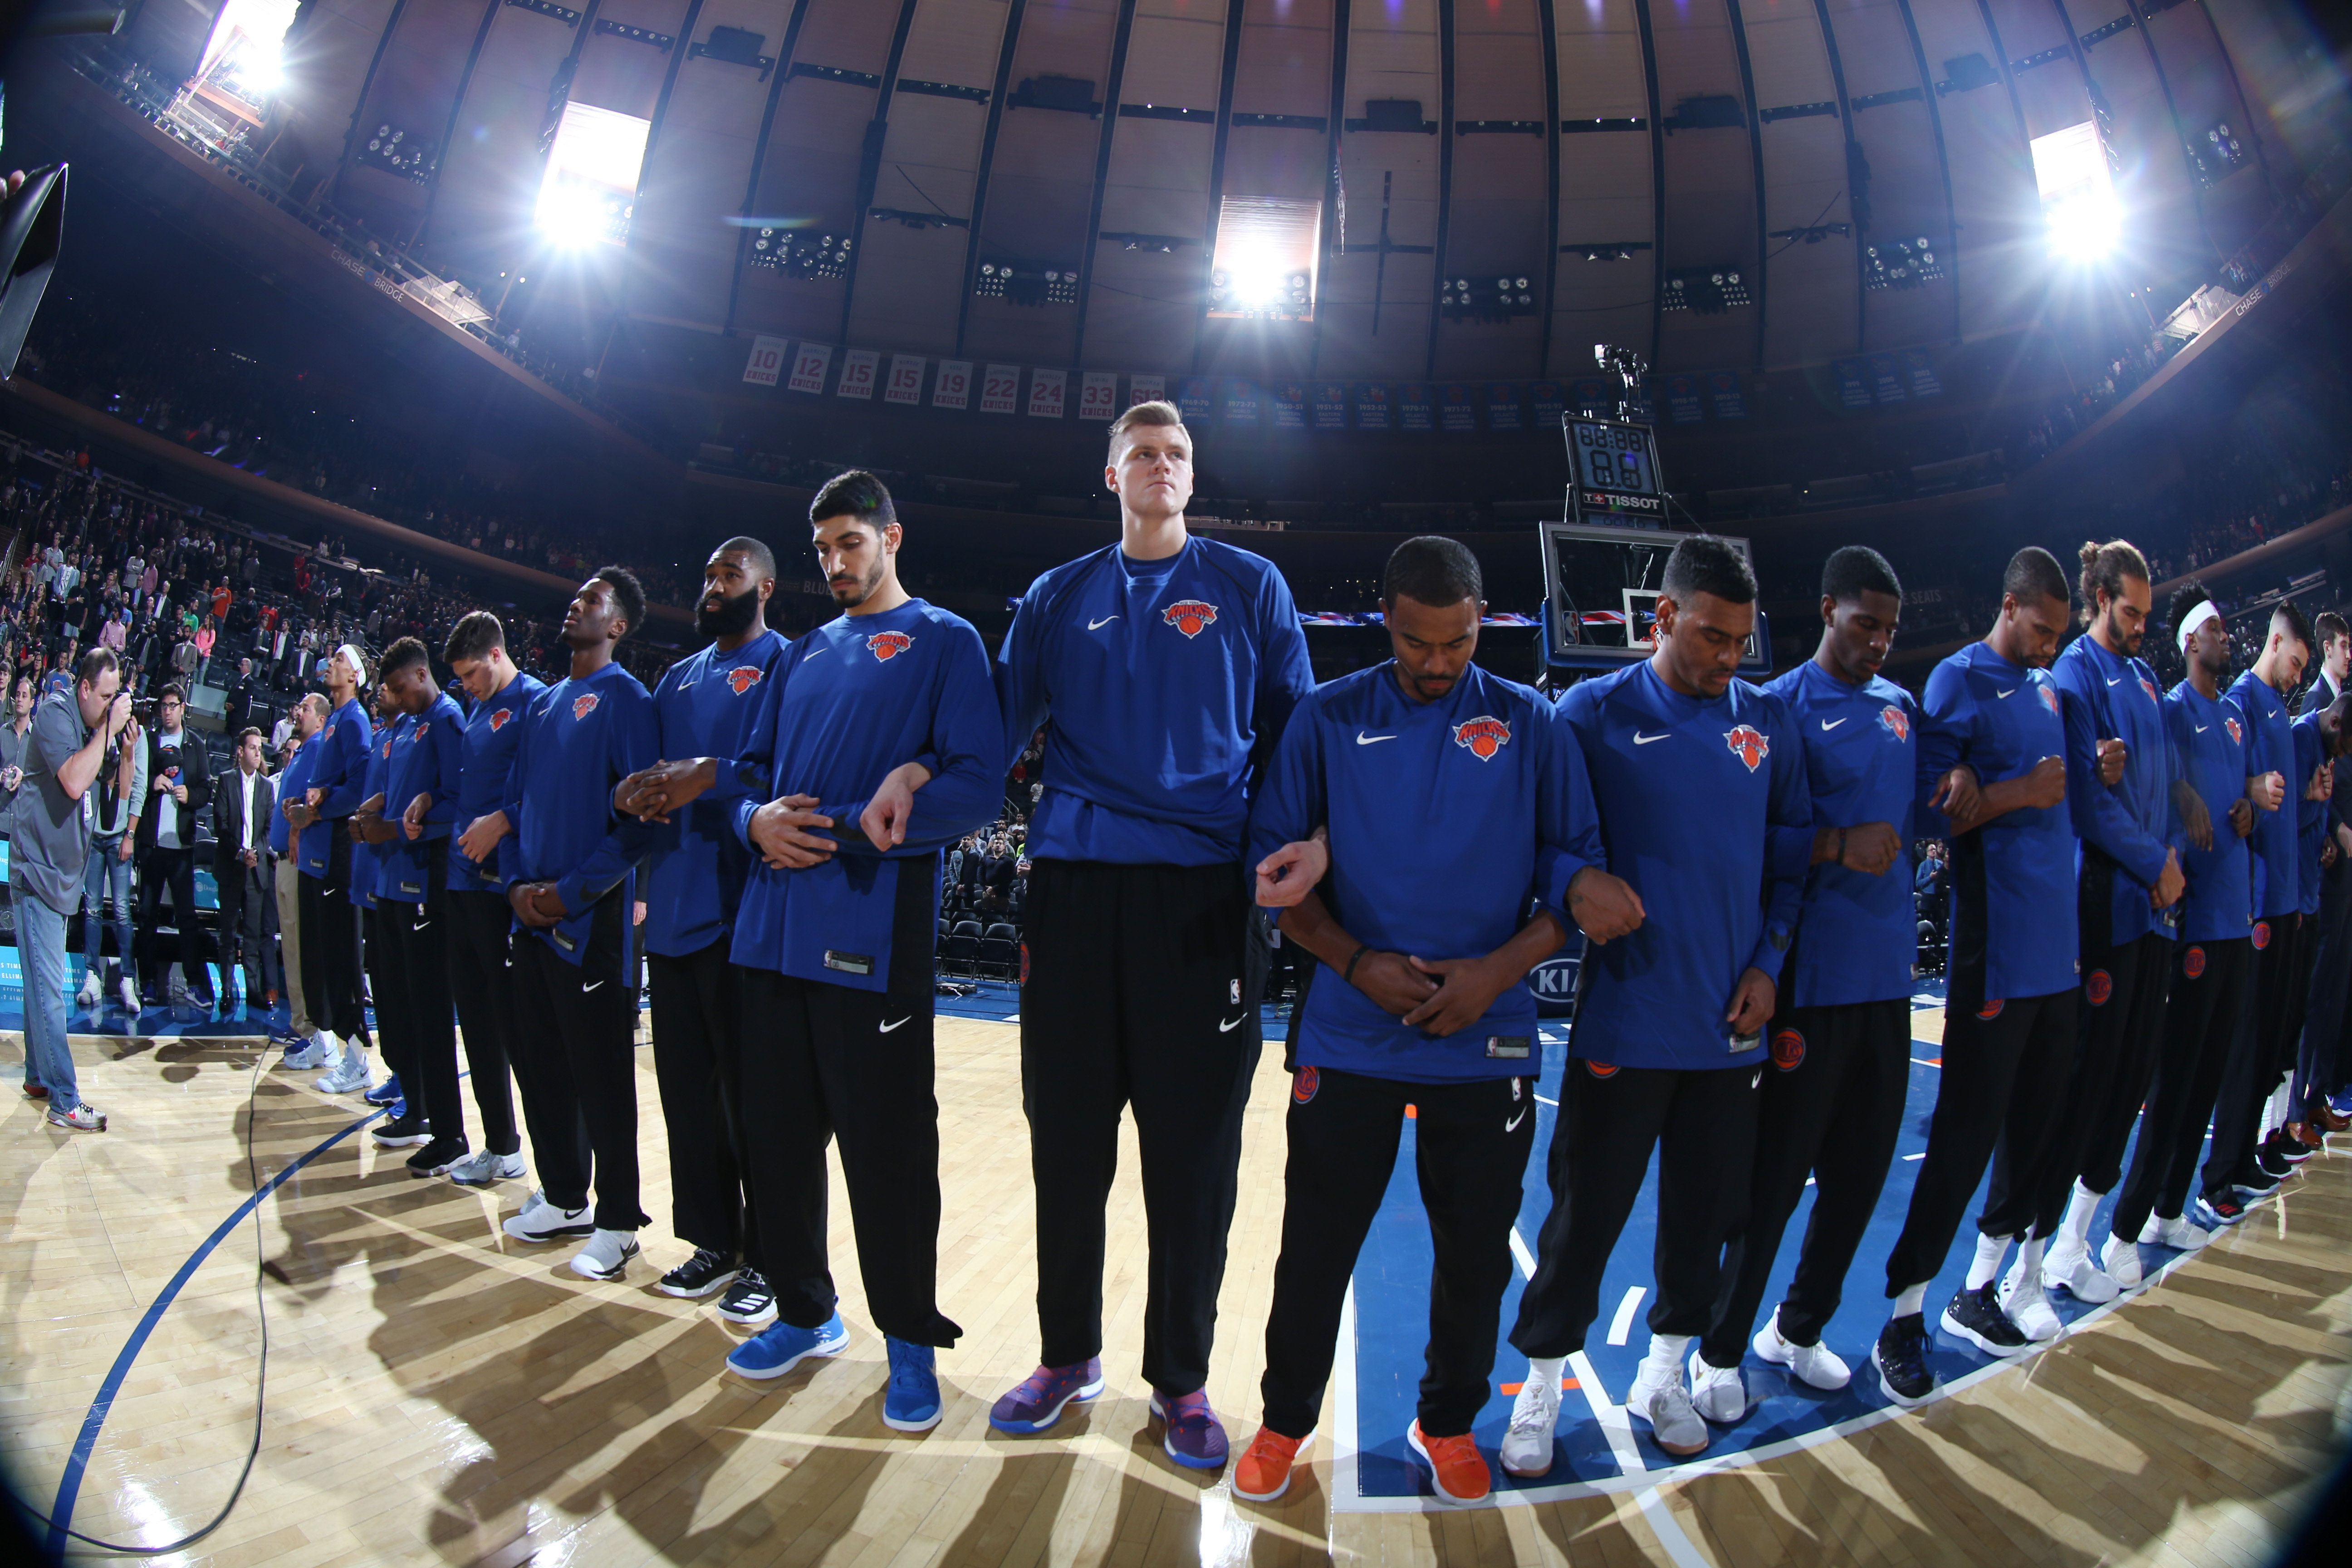 NEW YORK, NY - OCTOBER 3:  The New York Knicks stand for the National Anthem before the preseason game against the Brooklyn Nets on October 3, 2017 at Madison Square Garden in New York City, New York.  NOTE TO USER: User expressly acknowledges and agrees that, by downloading and or using this photograph, User is consenting to the terms and conditions of the Getty Images License Agreement. Mandatory Copyright Notice: Copyright 2017 NBAE  (Photo by Nathaniel S. Butler/NBAE via Getty Images)